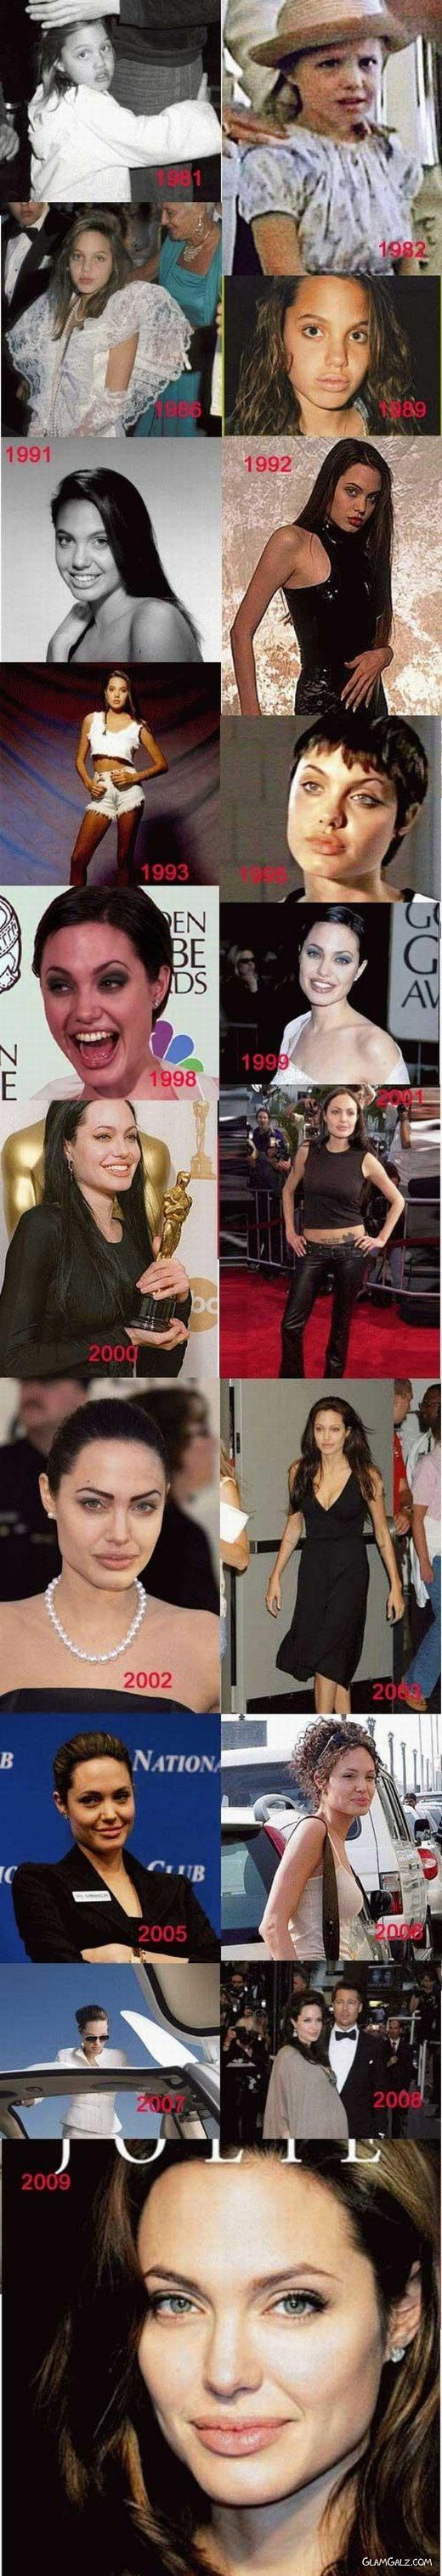 Angelina Jolie - Then and Now